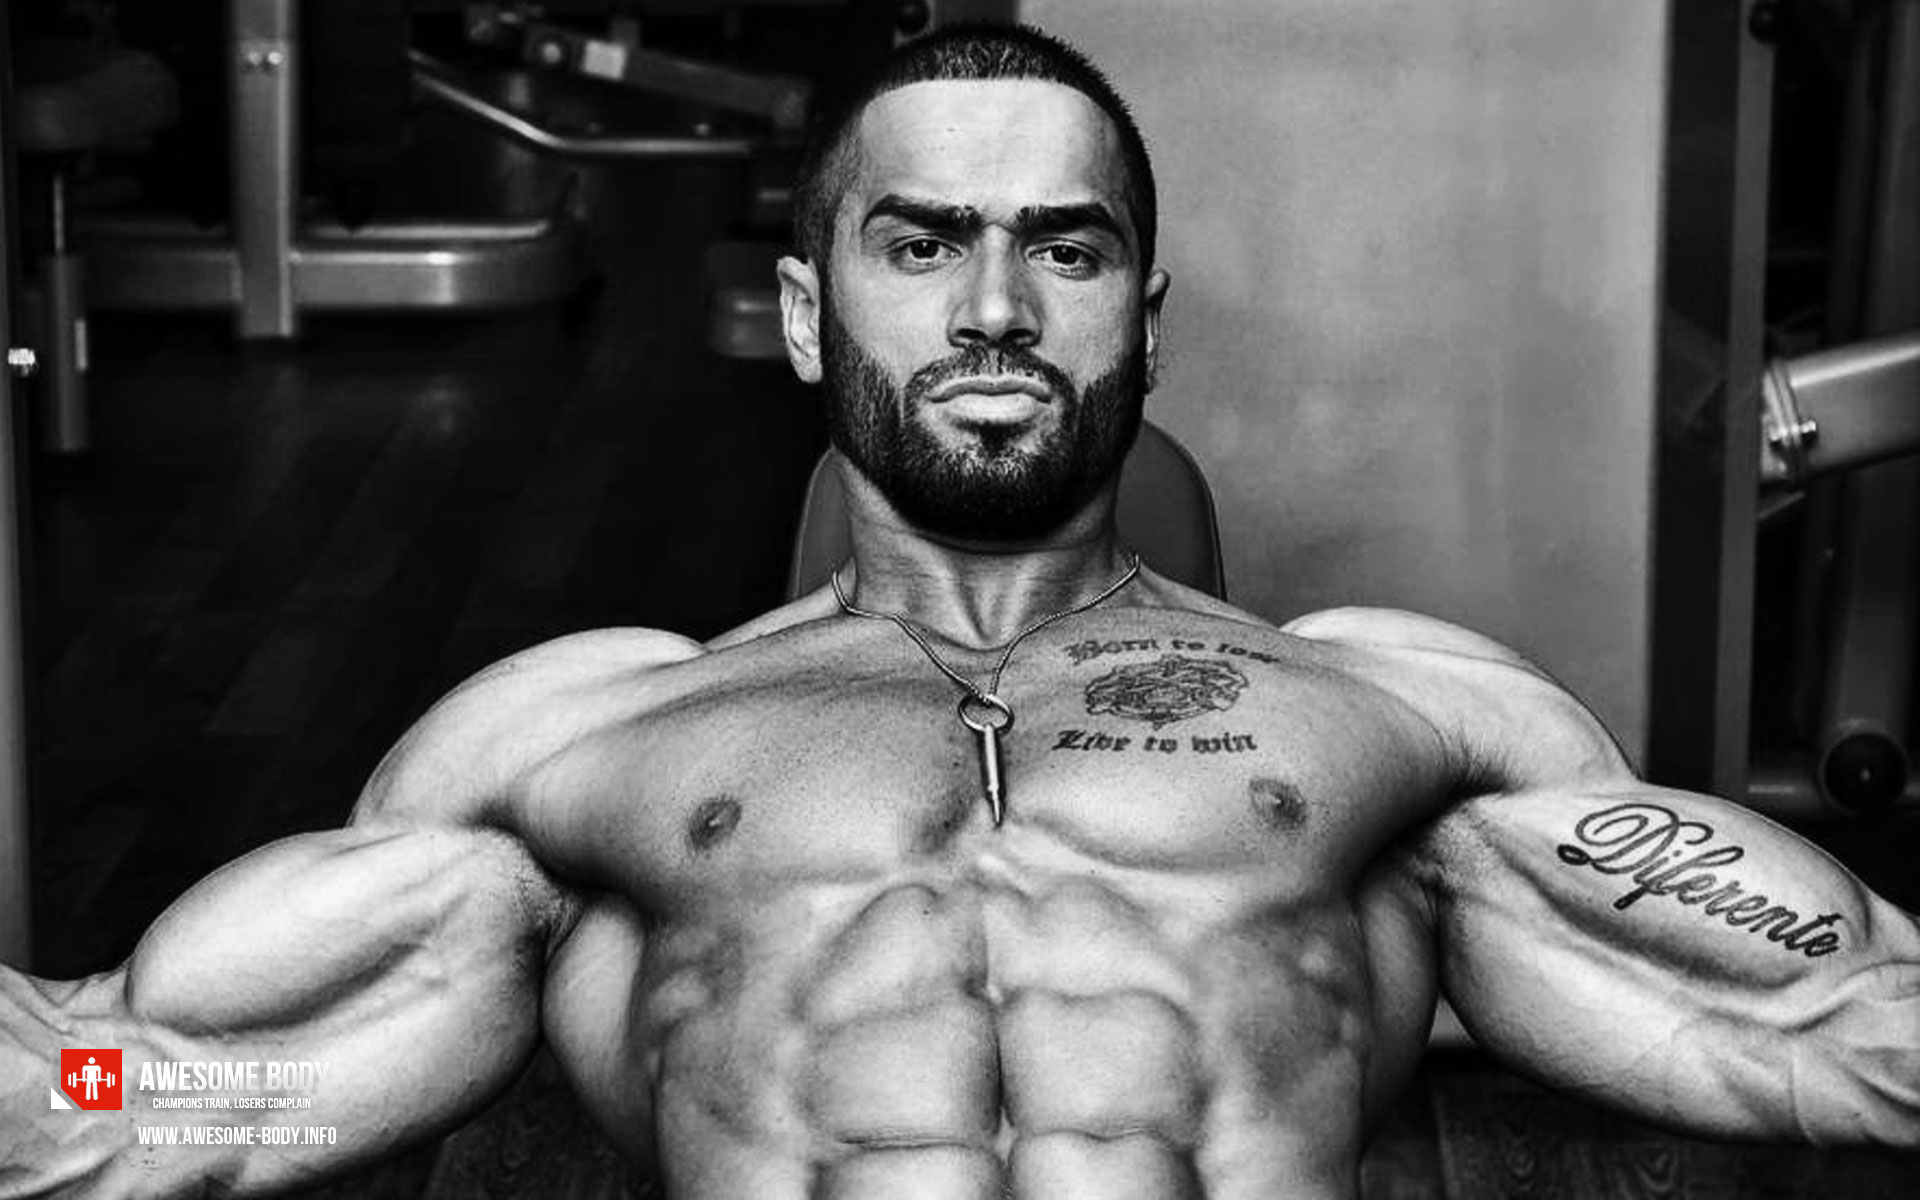 Russian Lazar Angelov Awesome Bodybuilding Sports Living Room Home